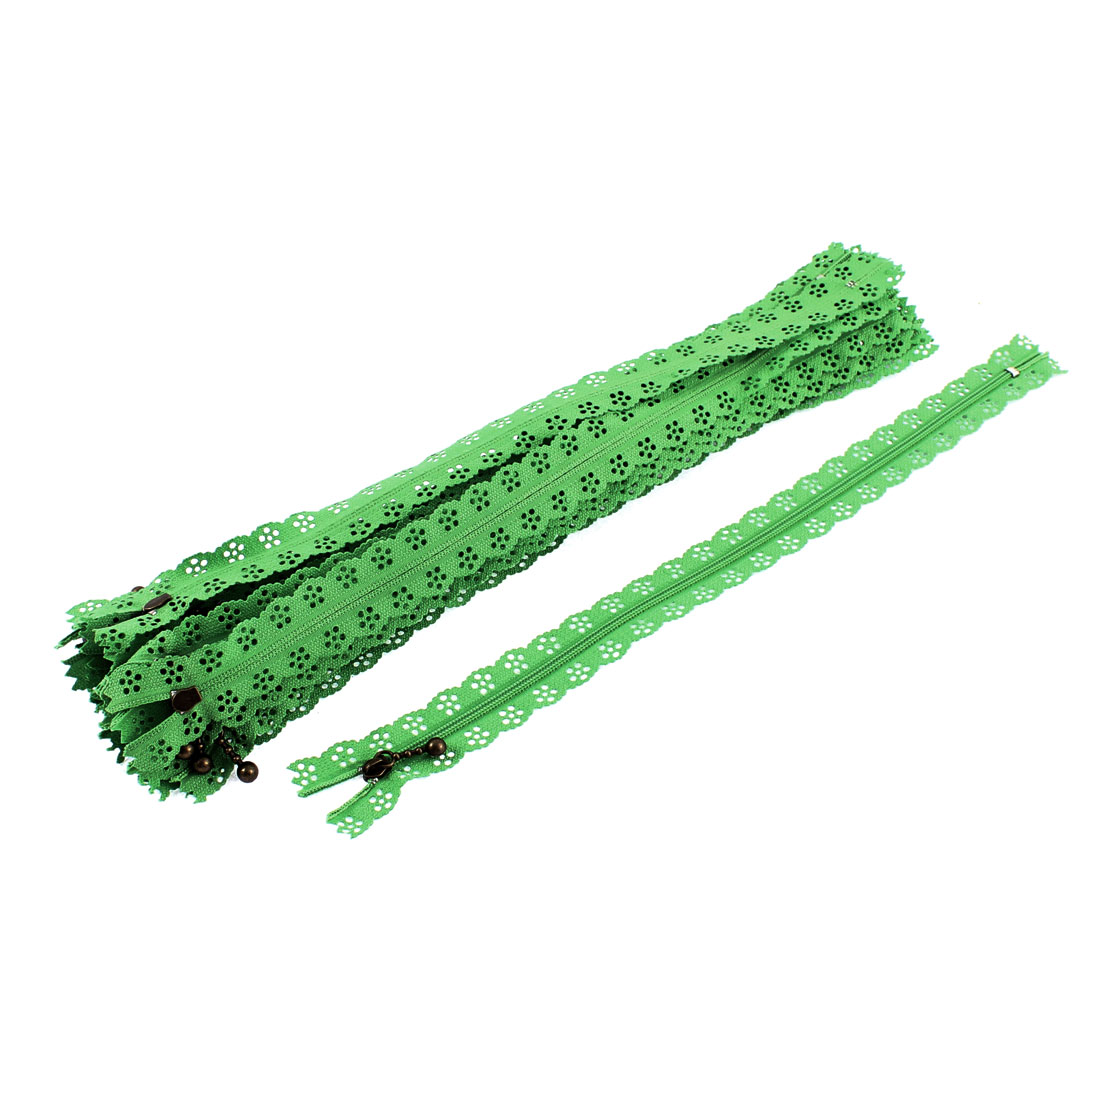 20 Pcs Green Lace Edged Zip Closed End Zipper 30cm Length